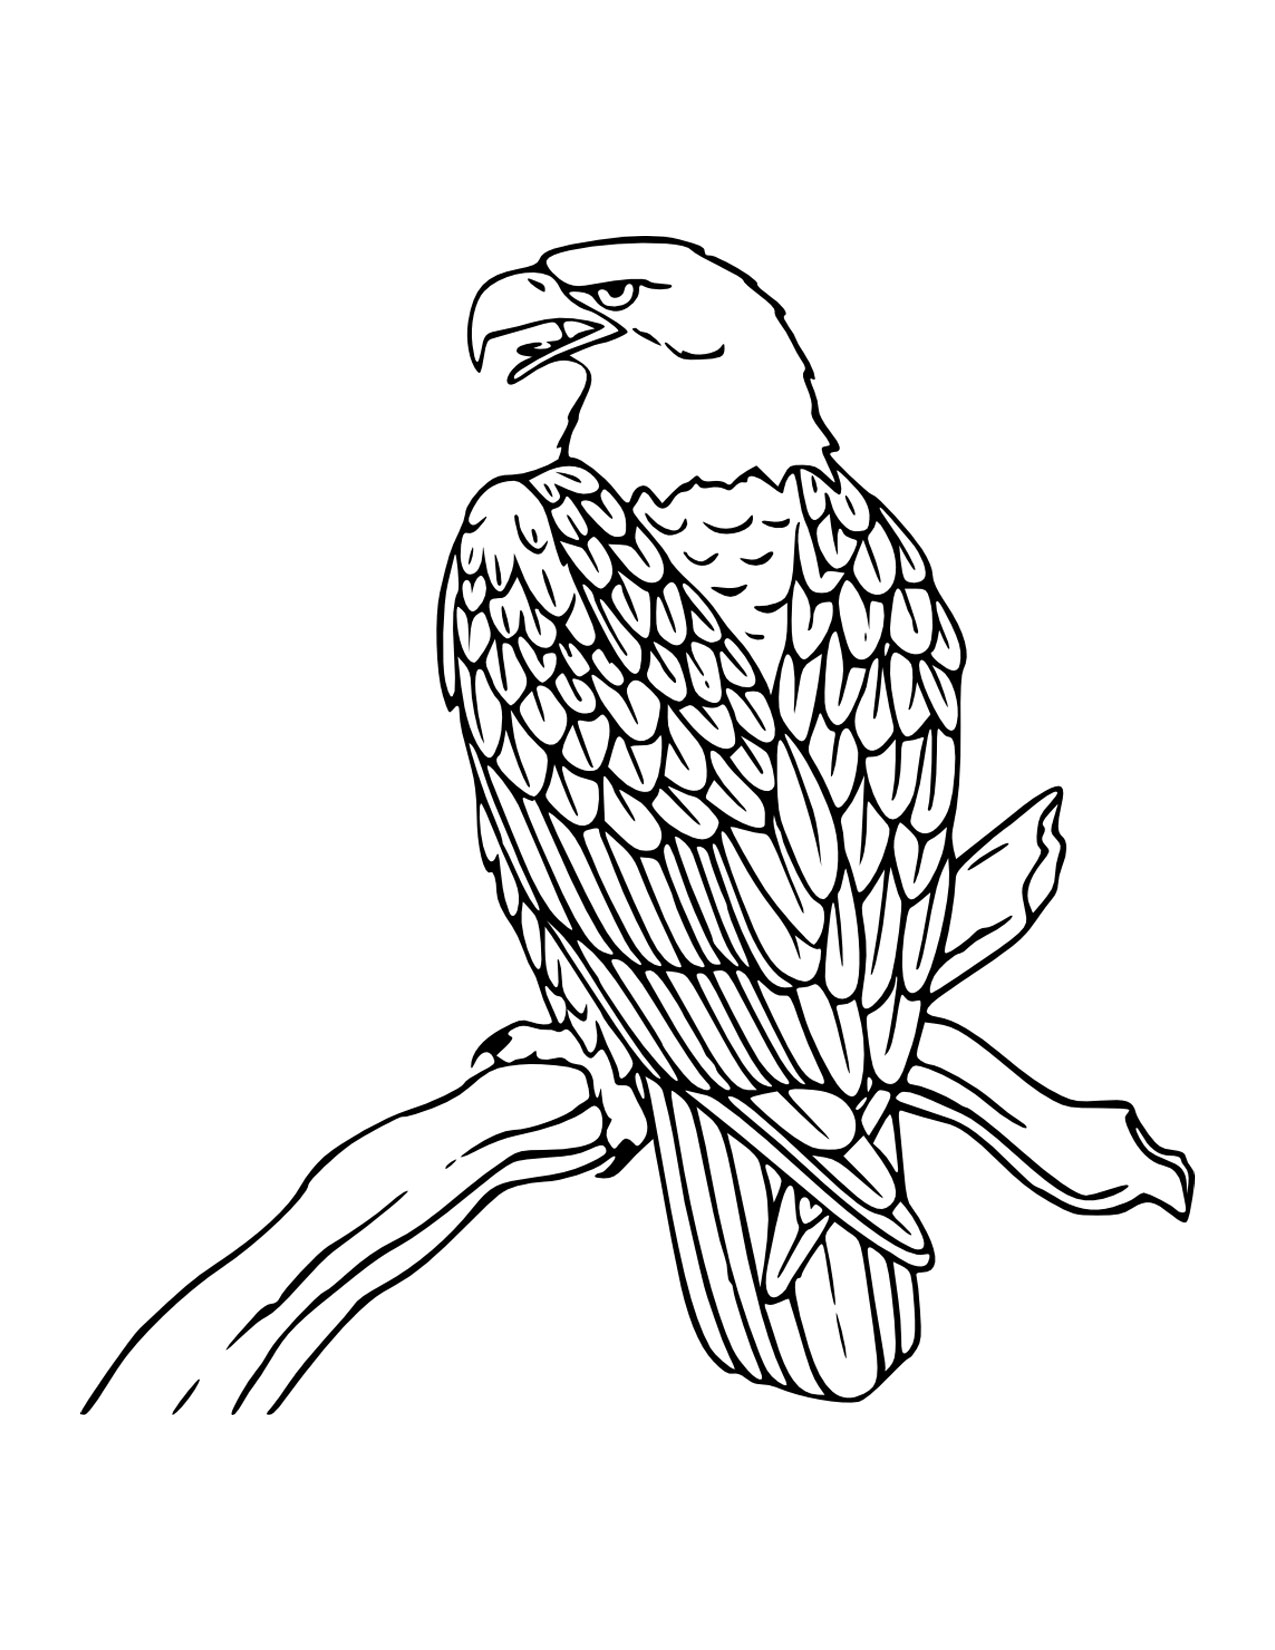 eagle coloring eagle coloring pages download and print eagle coloring pages coloring eagle